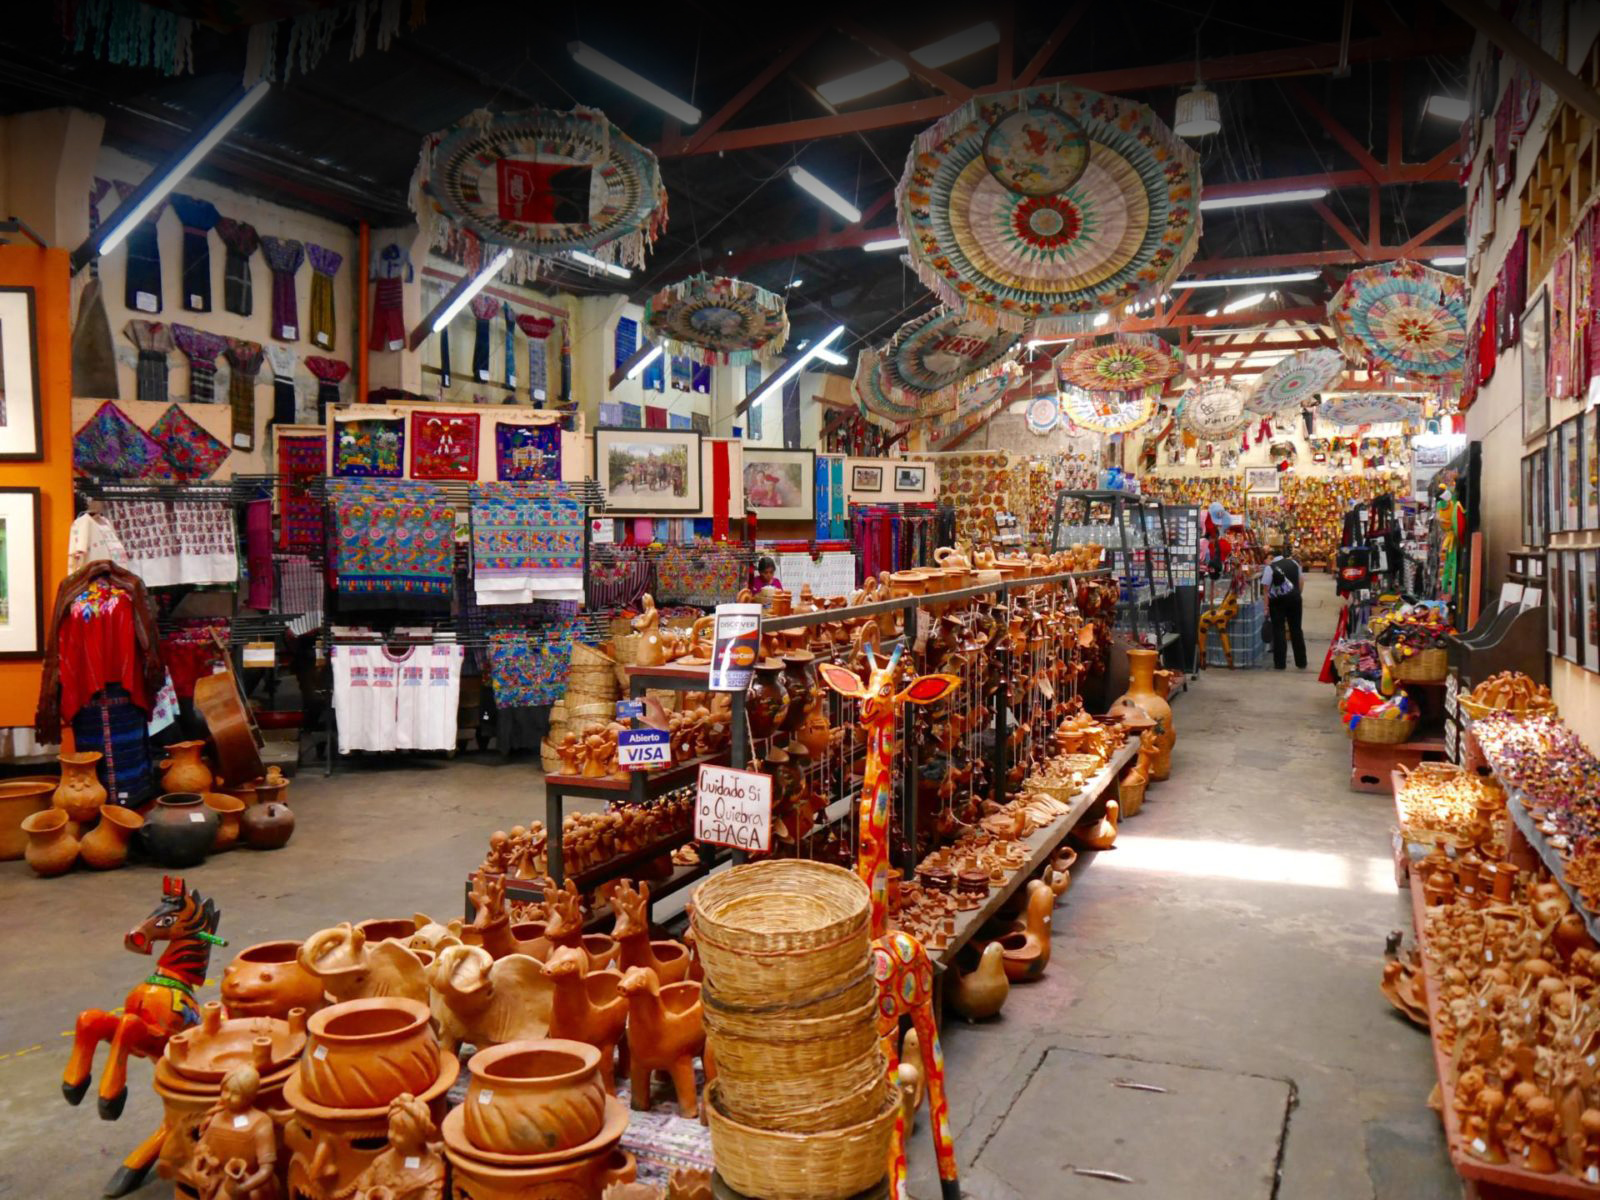 Textiles And Handicrafts From Guatemala